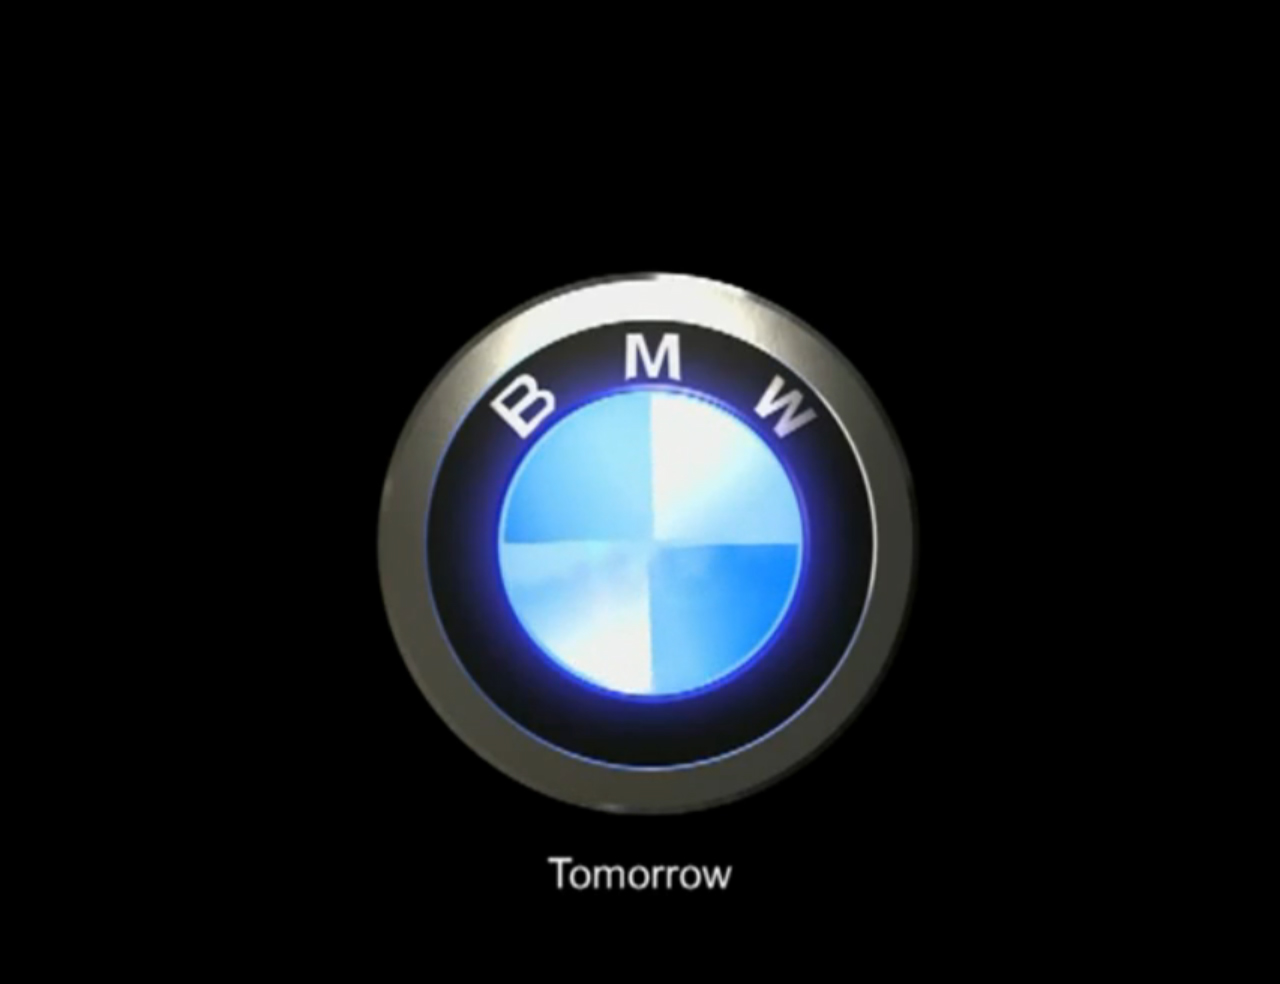 96 Bmw Logo Wallpapers On Wallpapersafari